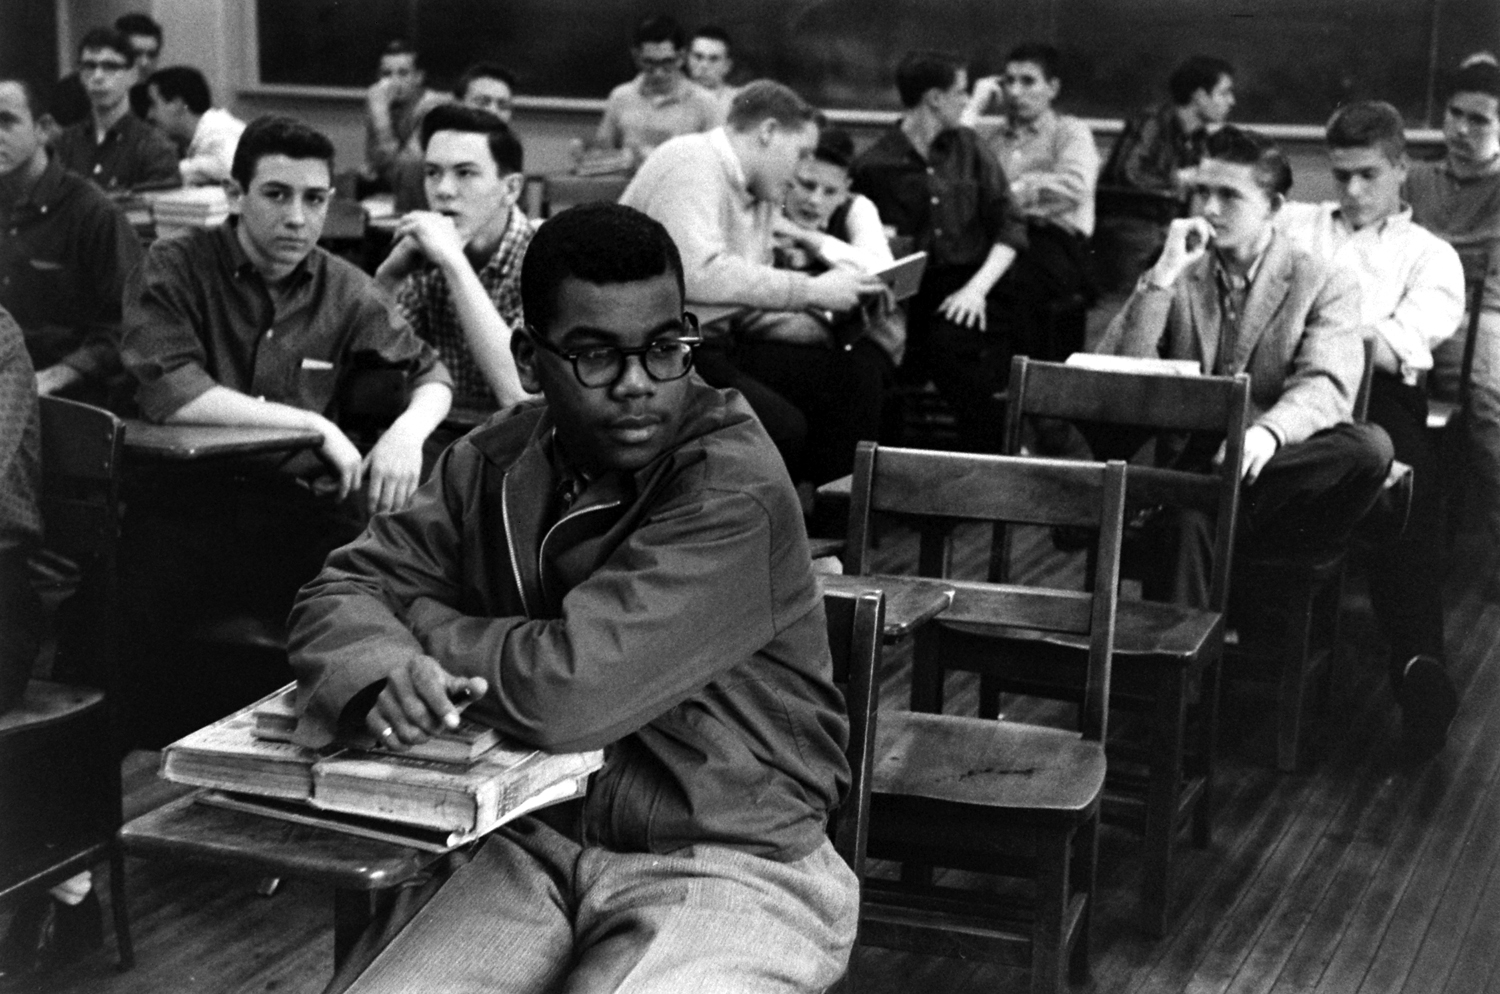 Fifteen-year-old Louis Cousins, Maury High School, Norfolk, Va., 1959.